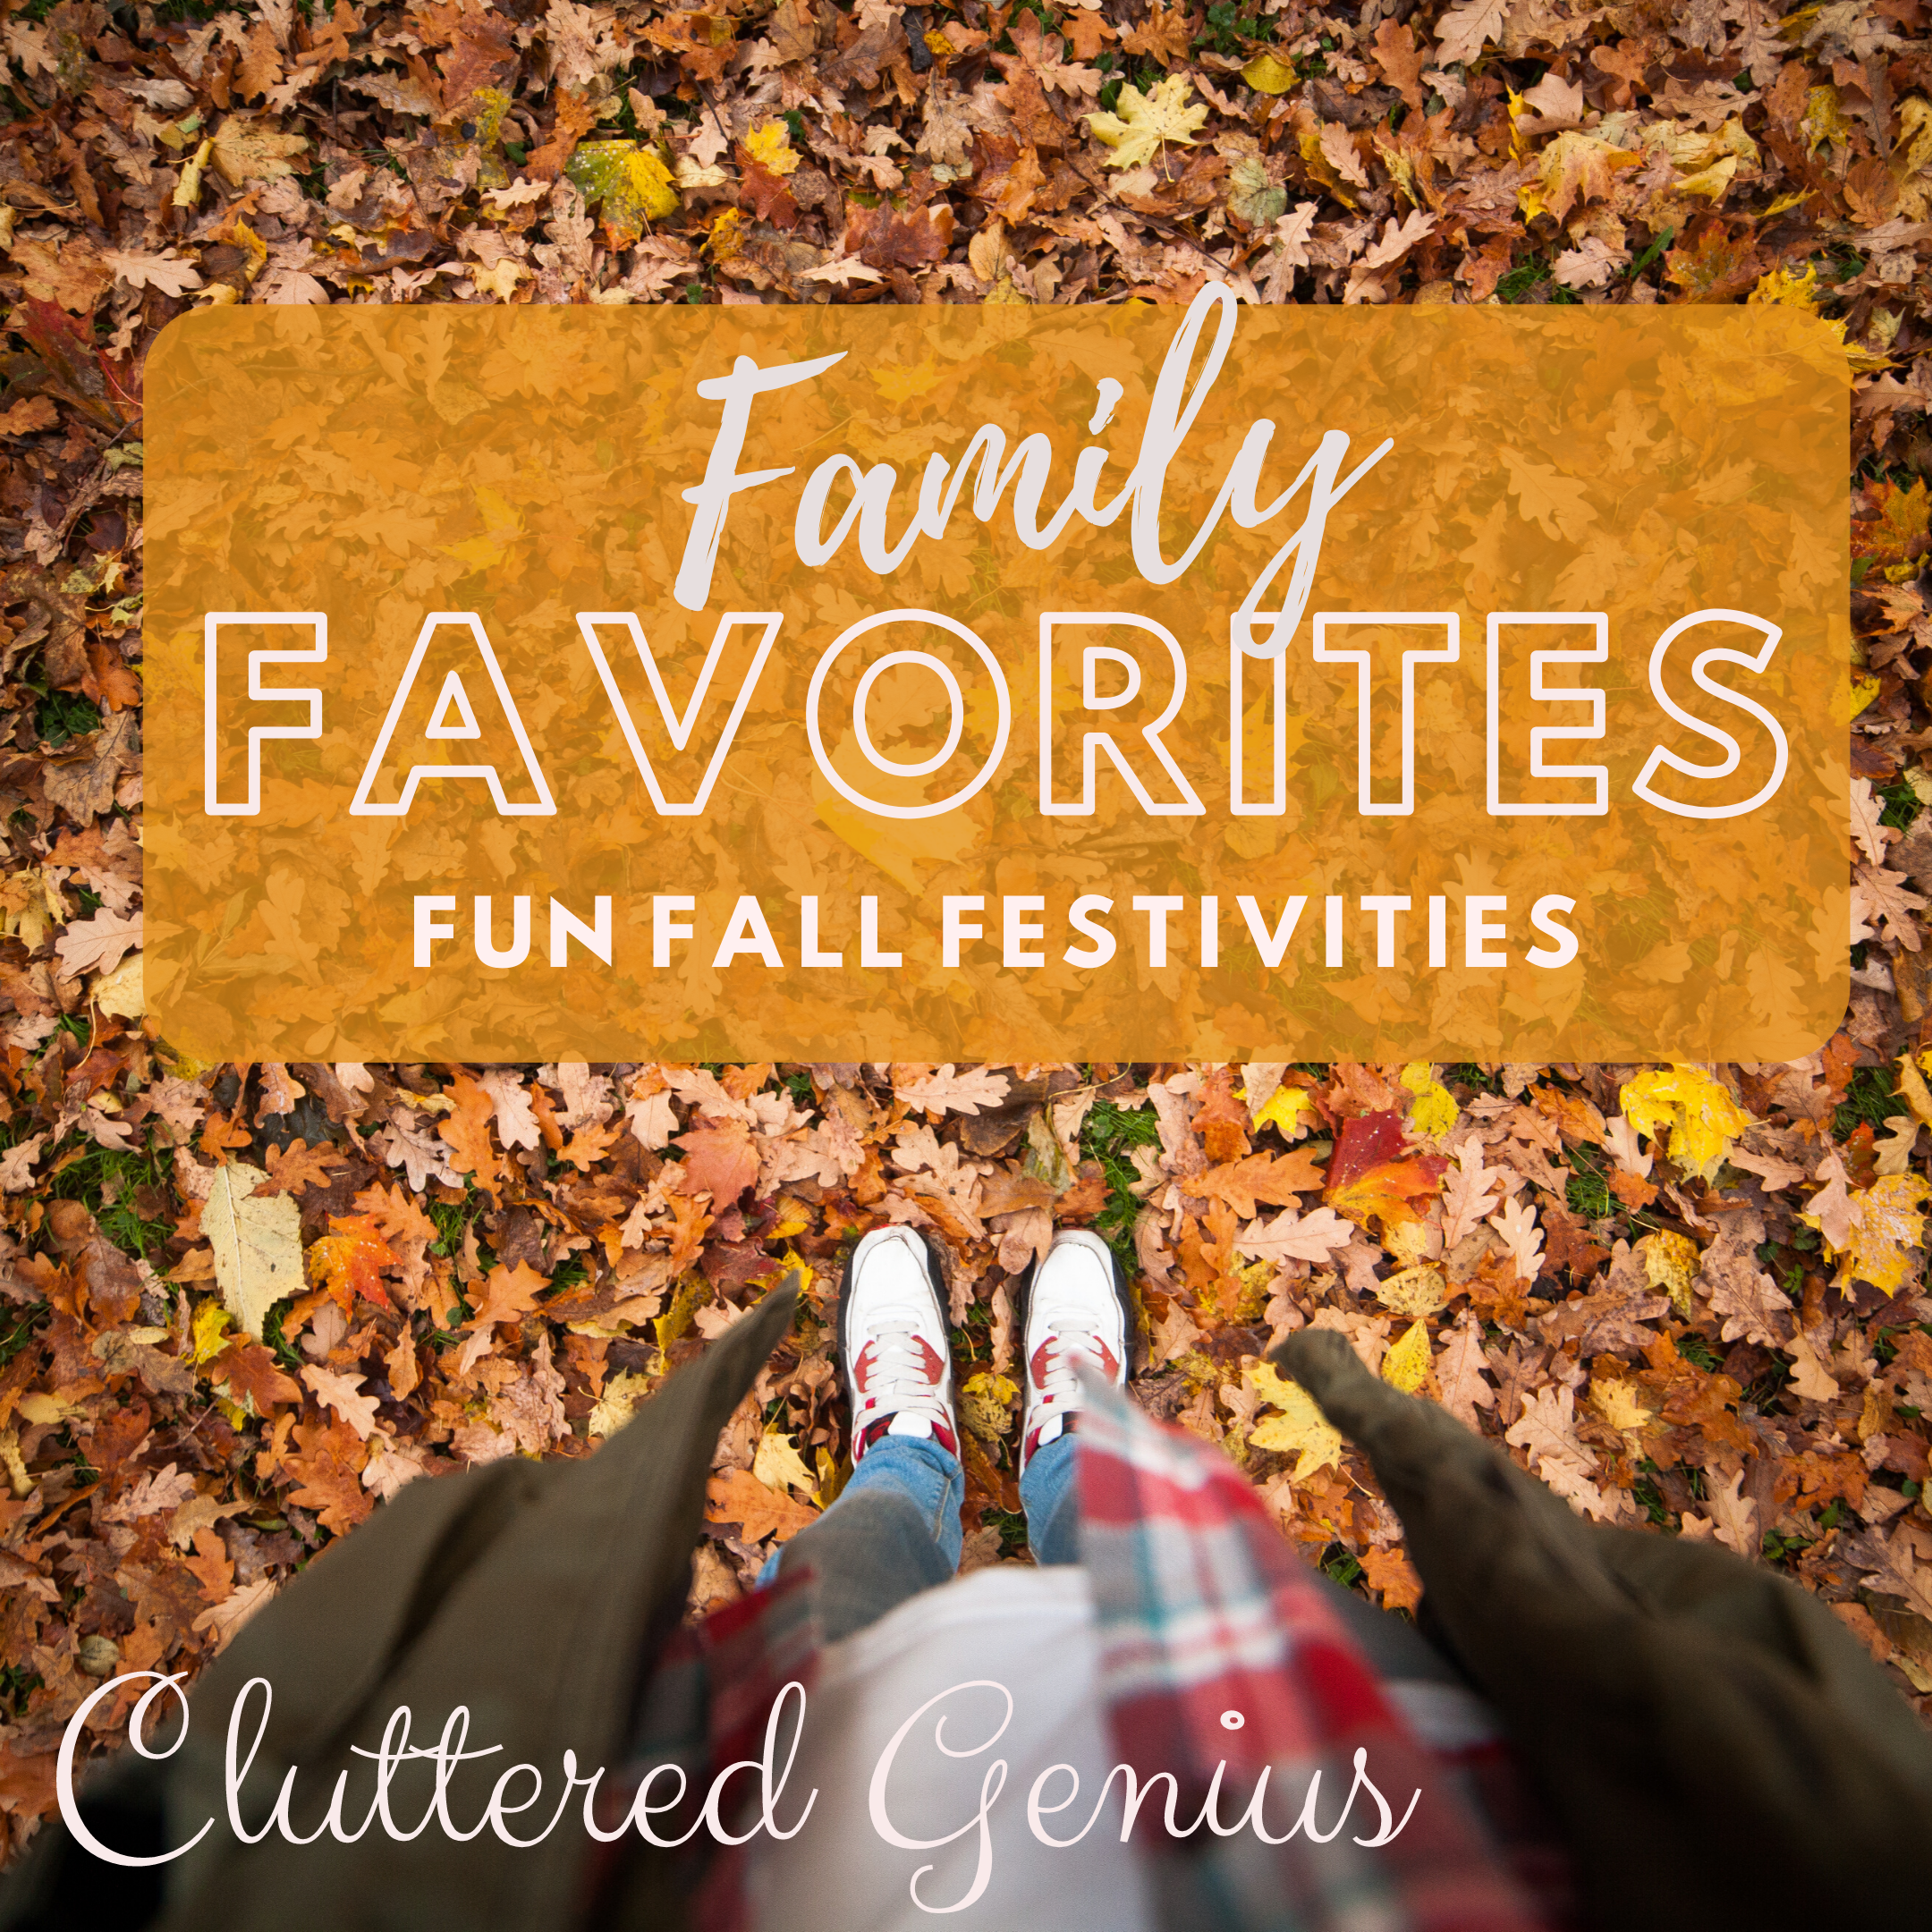 Family Favorites: Fun Fall Festivities